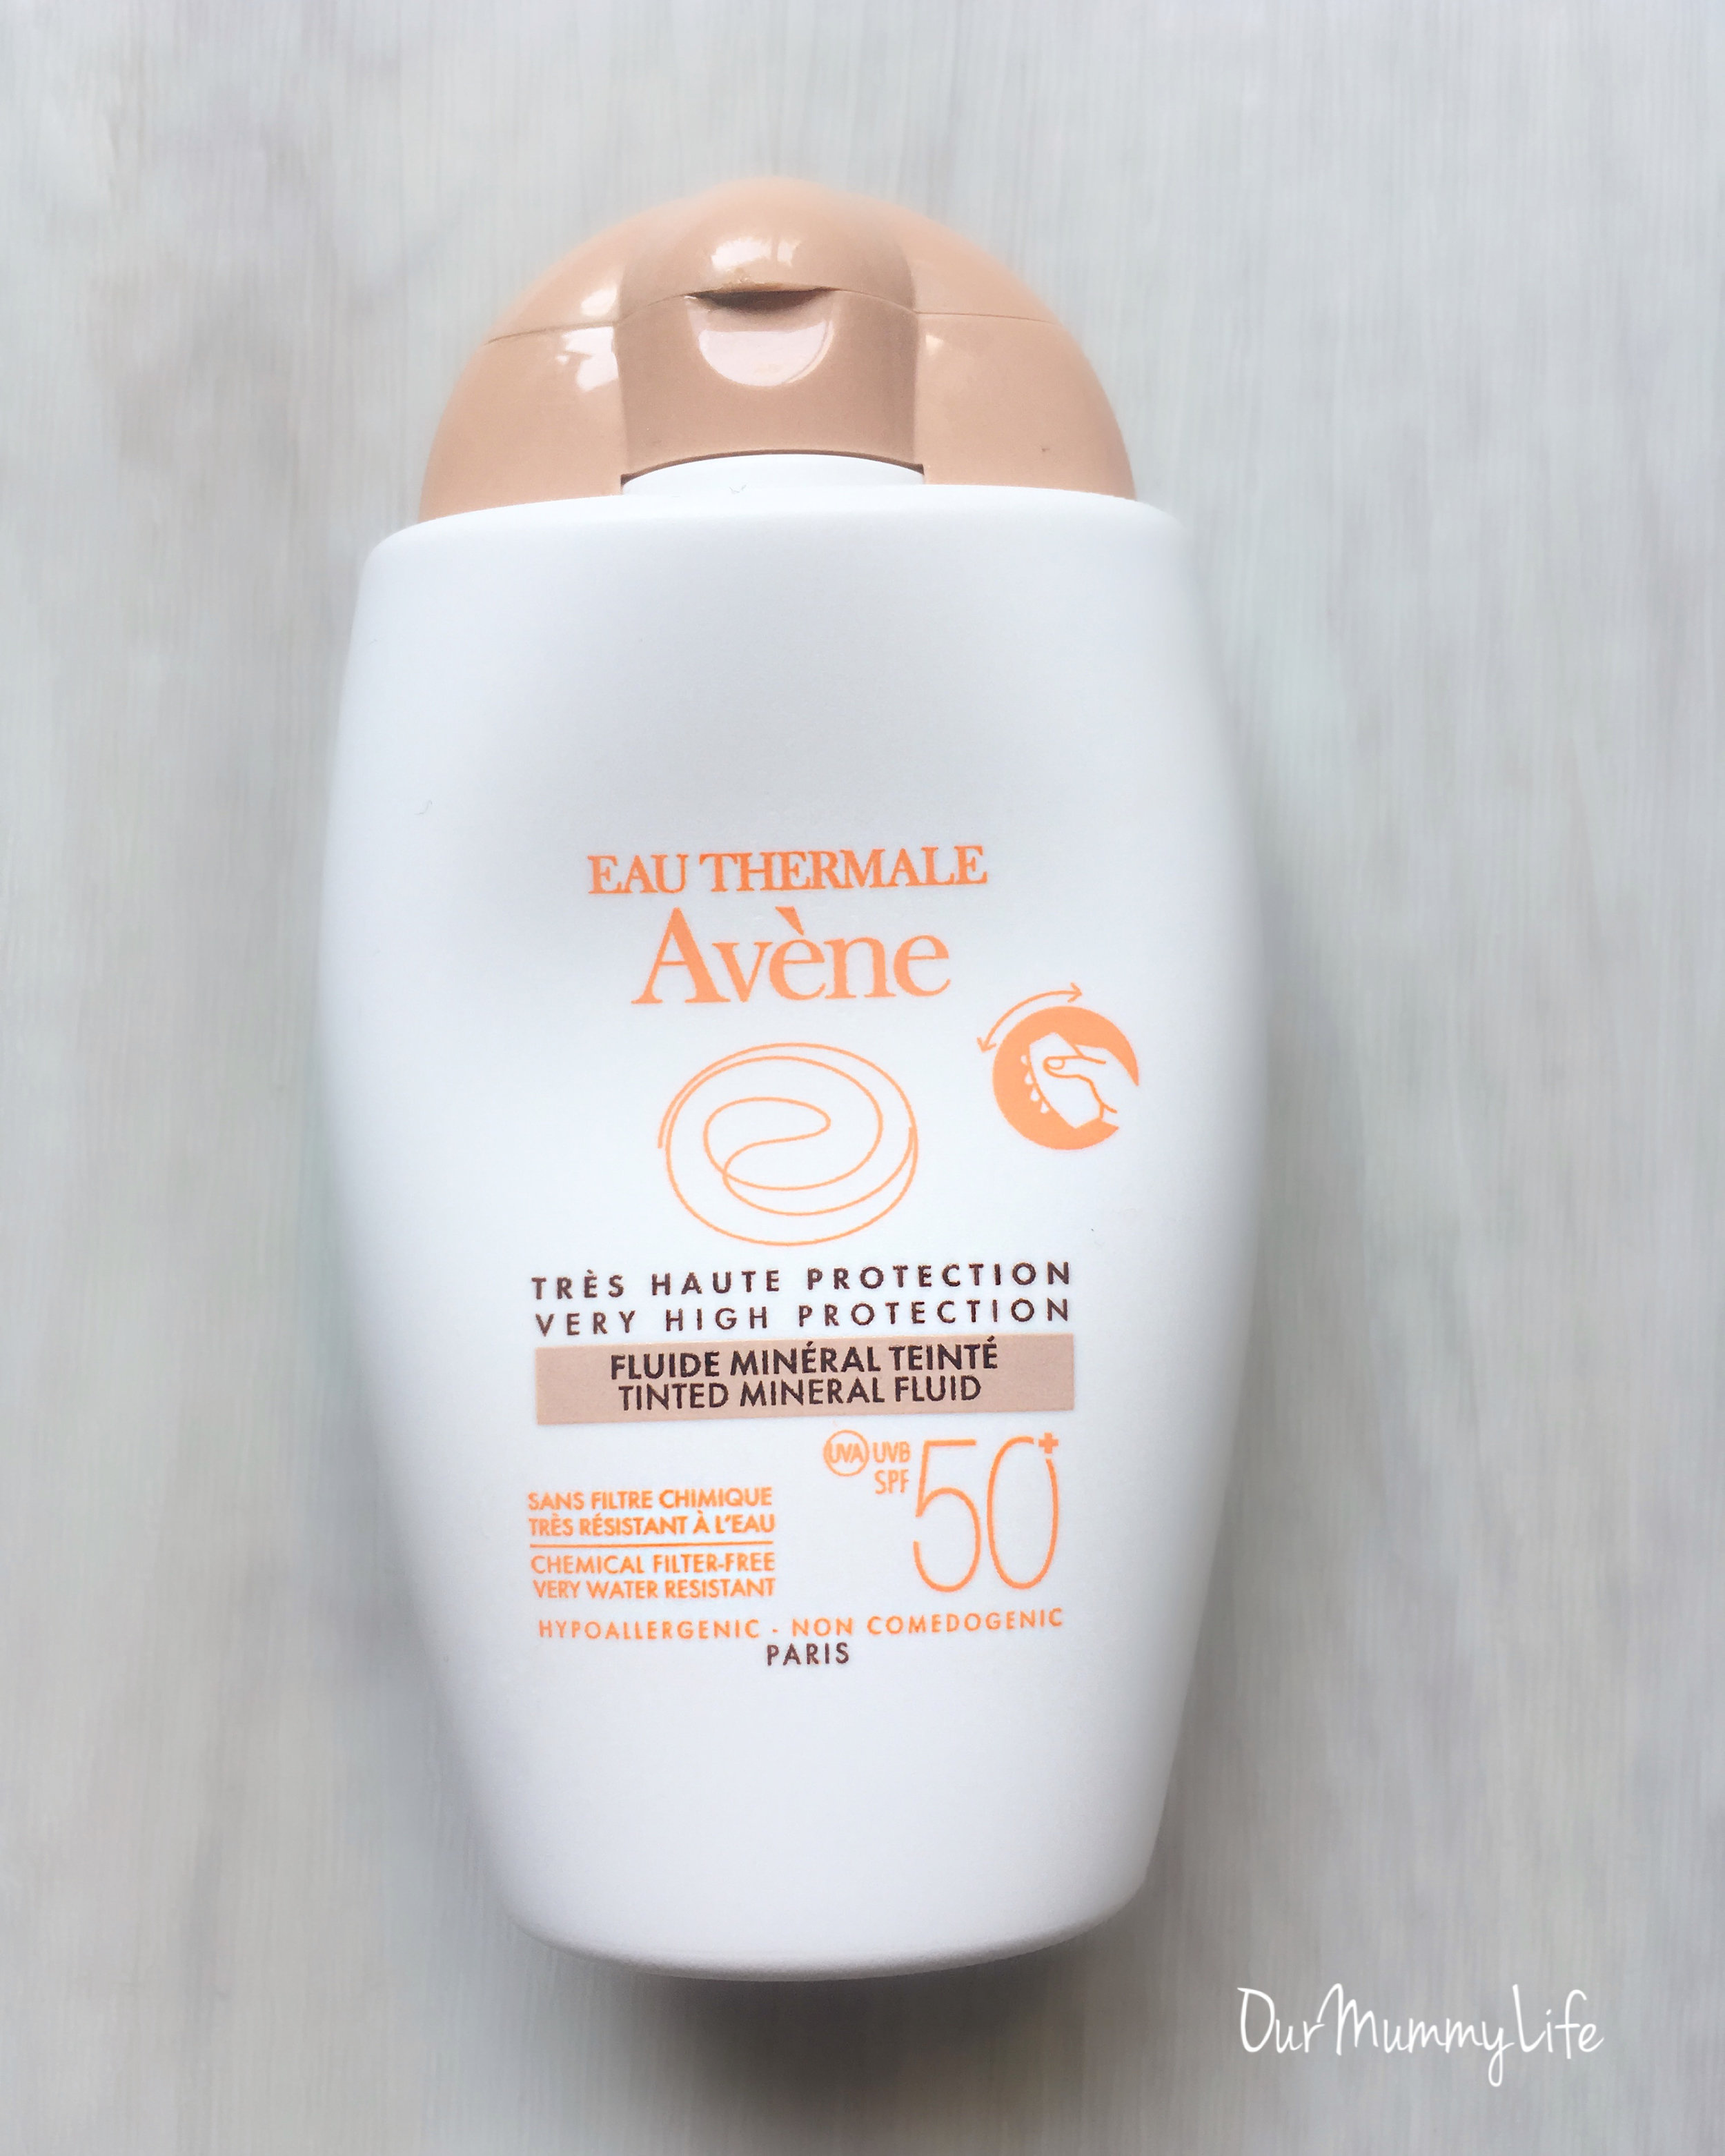 I Love this tinted mineral fluid for my face. This sunscreen is great for using alone or under makeup. This is the first mineral sunscreen that does not leave my face greasy or with a white cast.